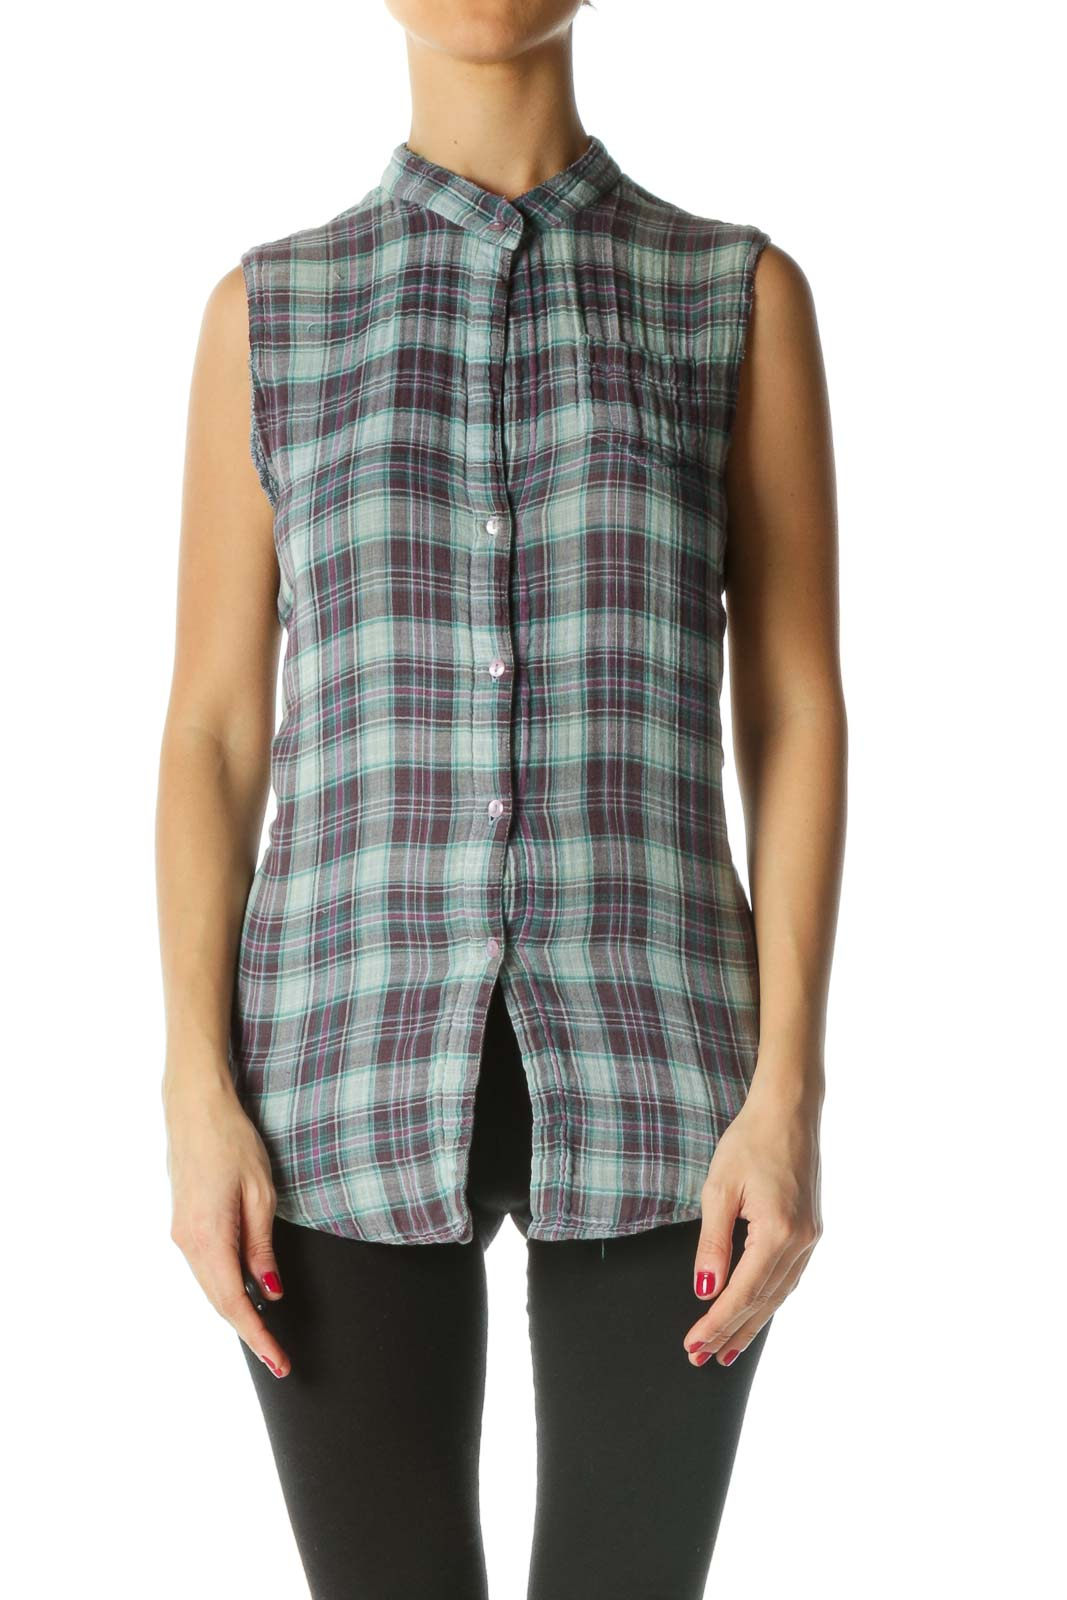 Blue White Purple Plaid Knit Sleeveless Top Front